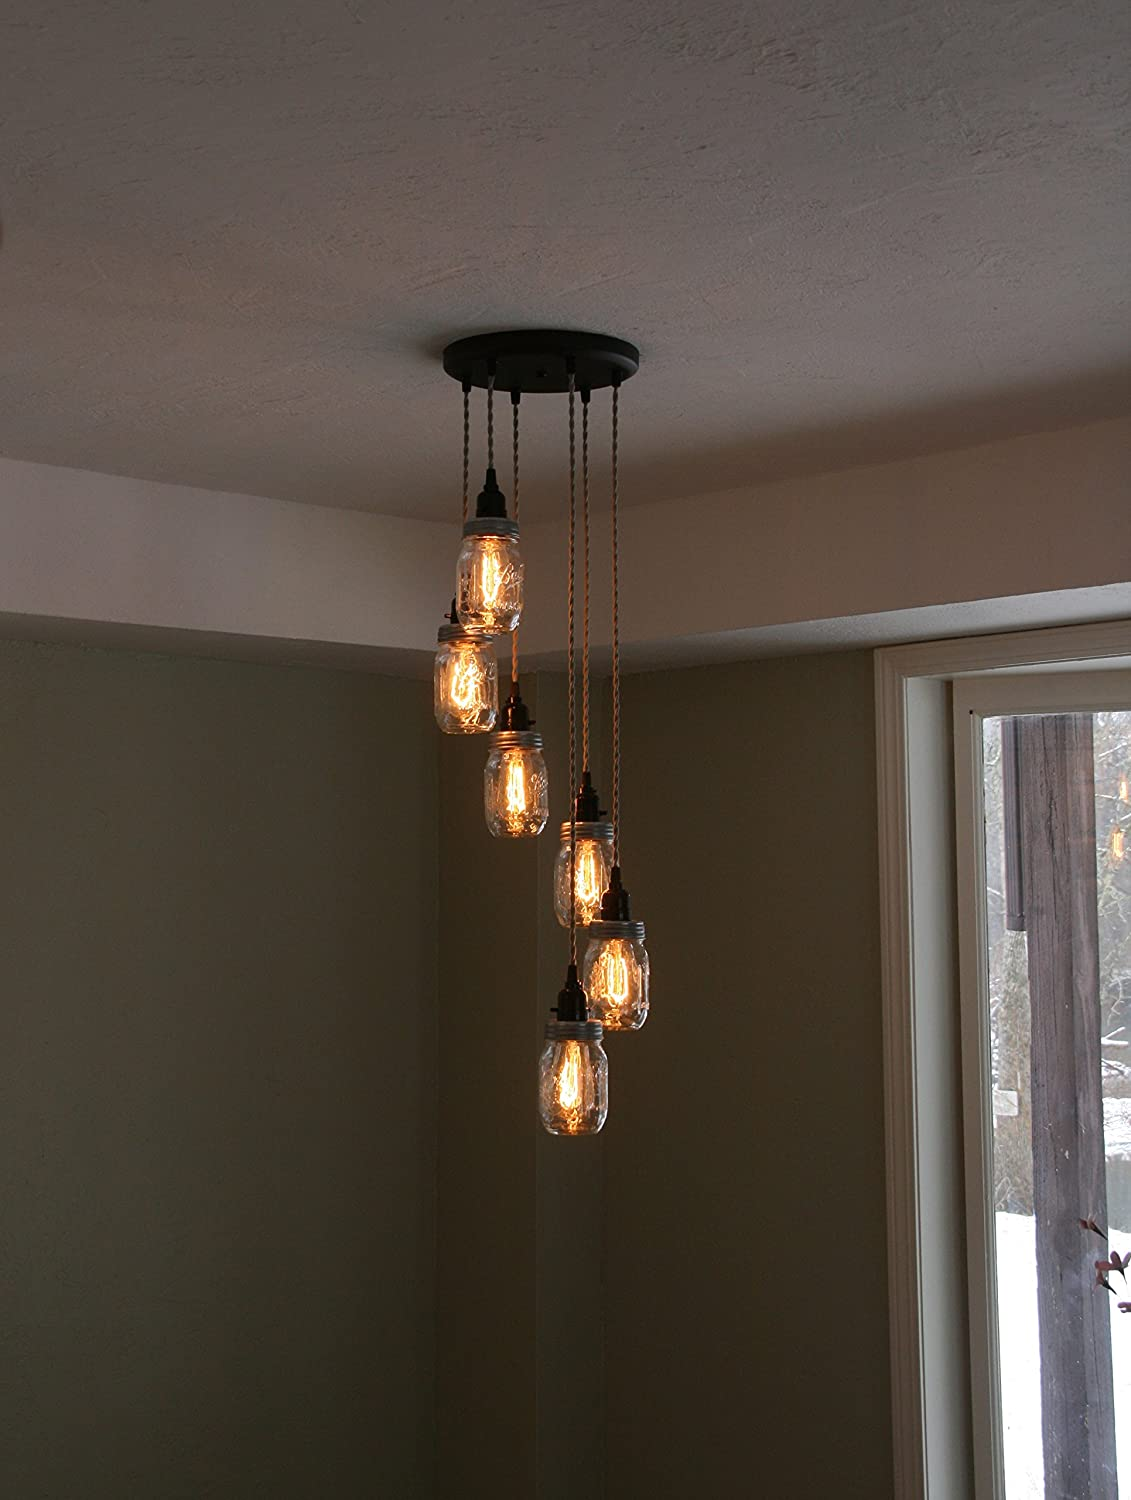 Jar Chandelier Light - 6Strand Spiral Mason Jar Chandelier on 12 ...